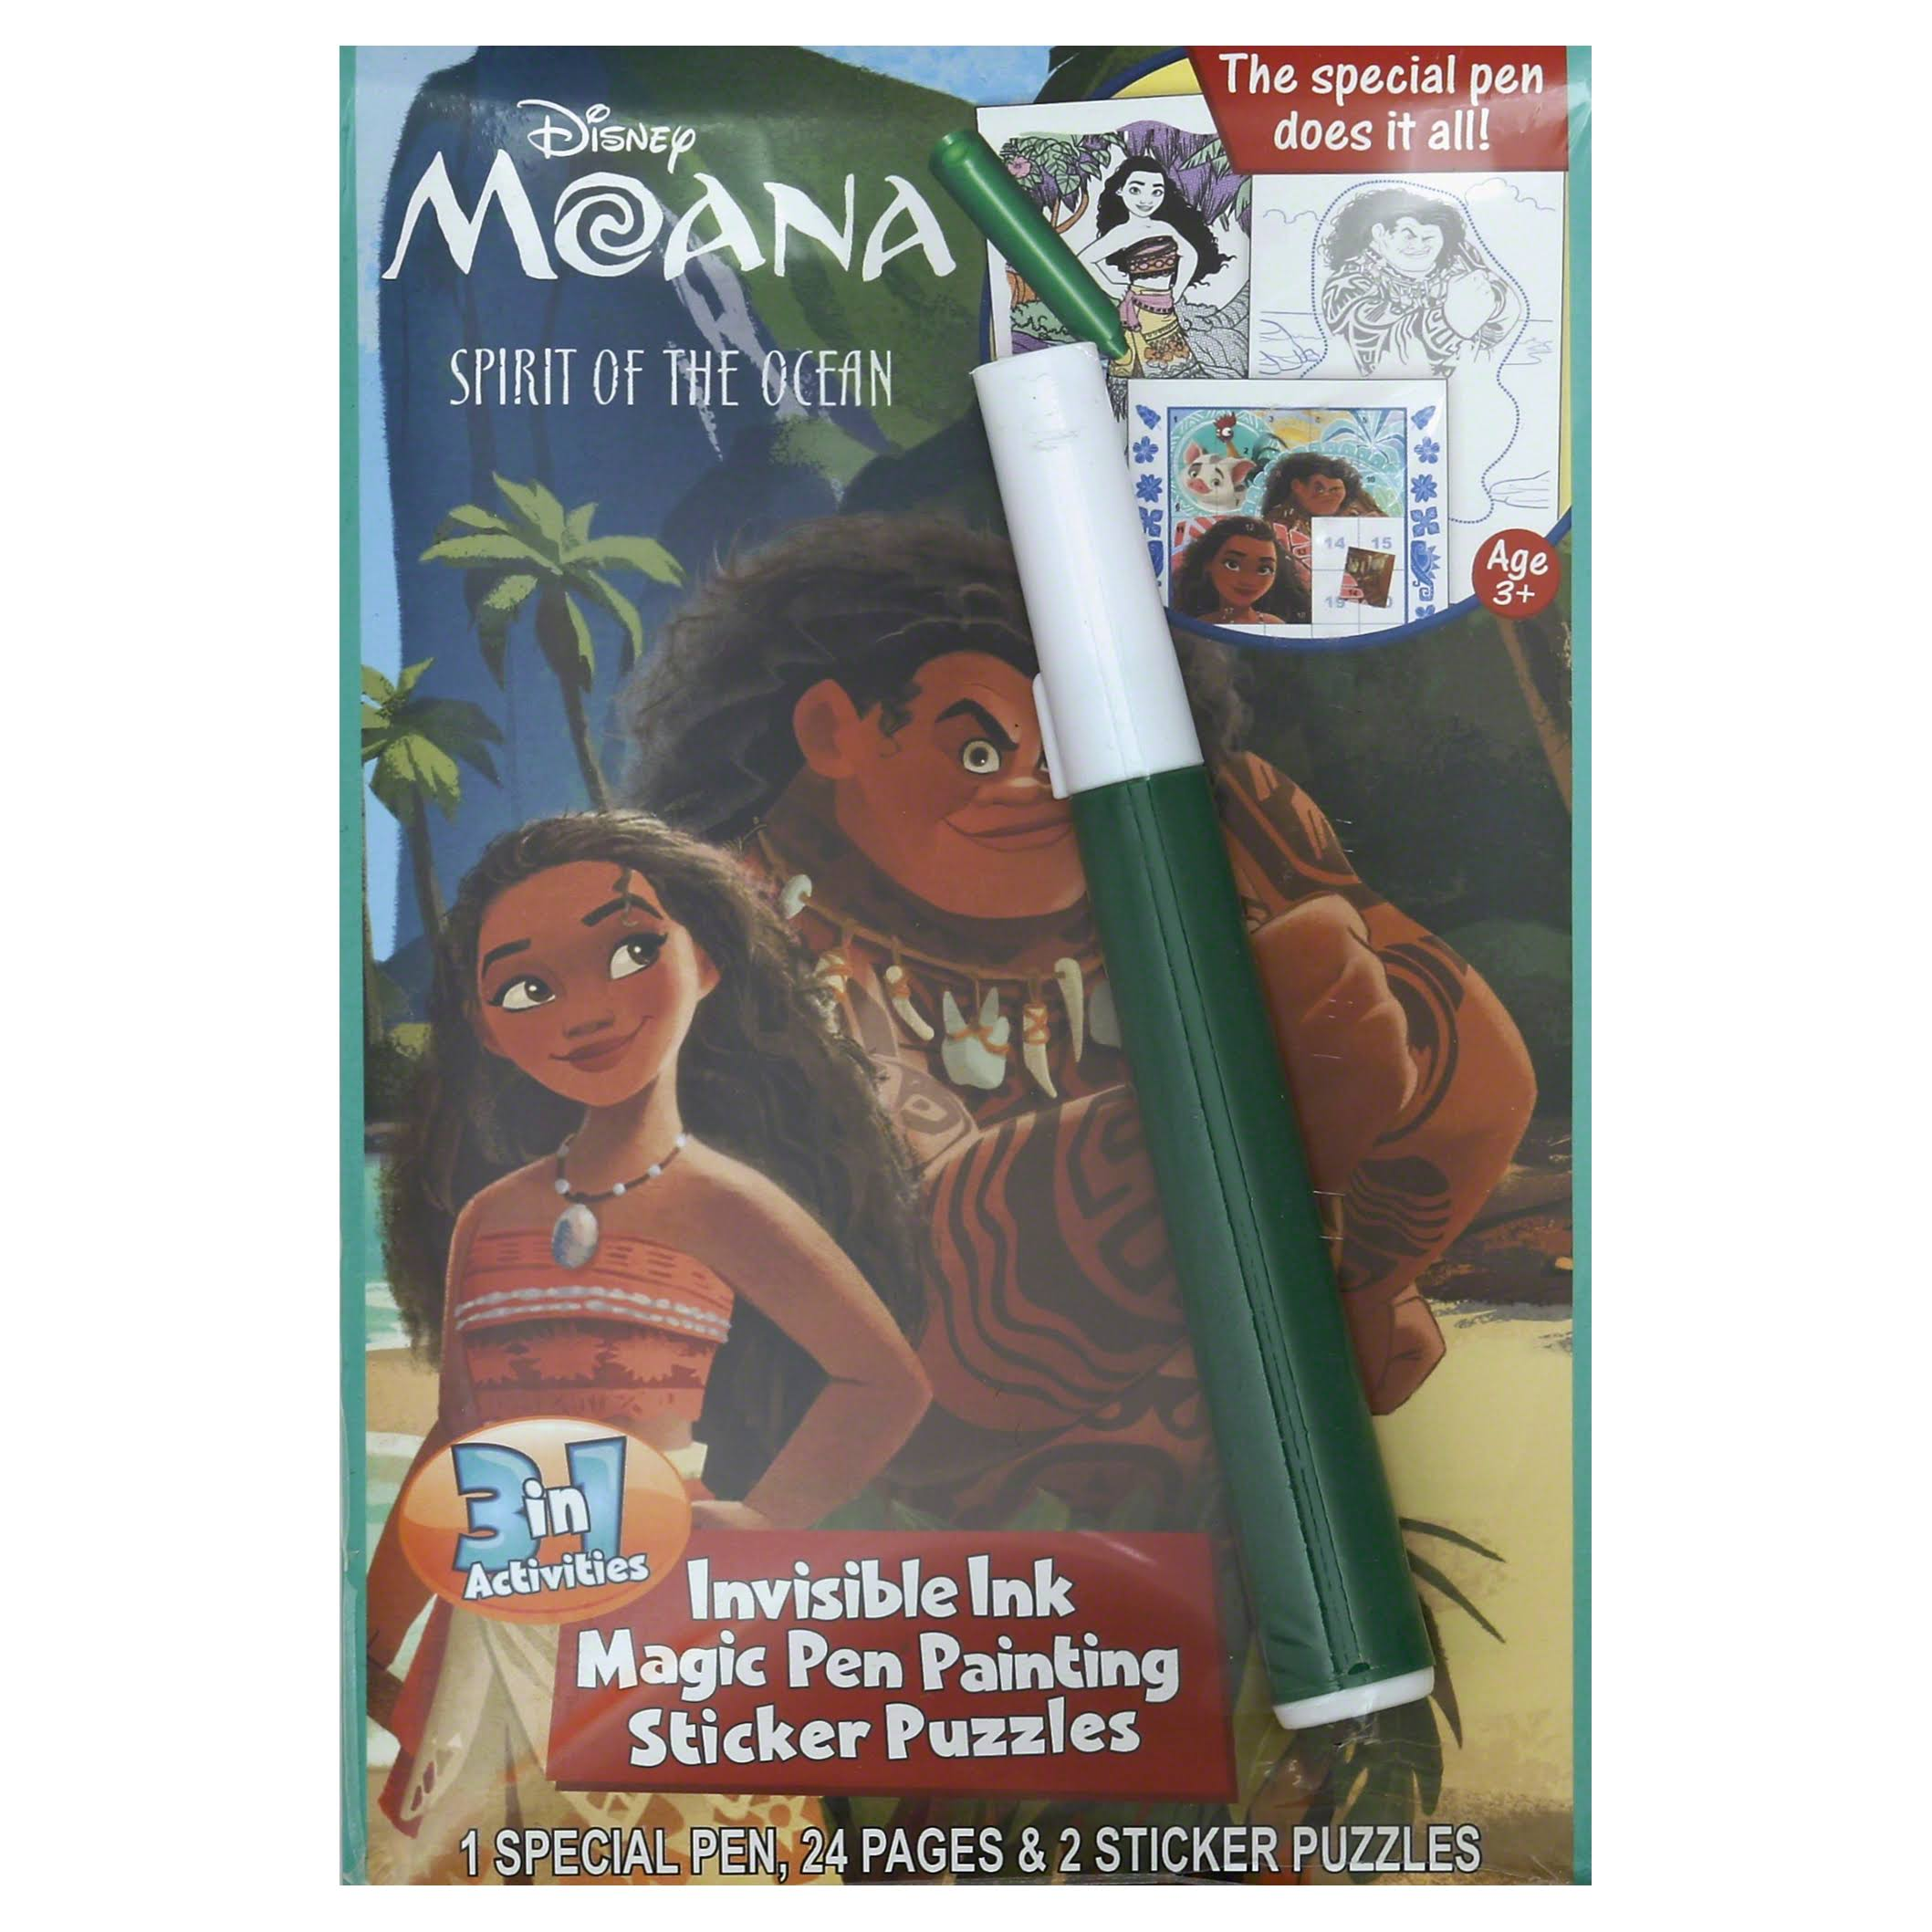 Lee Publications 3 In 1 Activities, Disney Moana, Spirit of the Ocean, Ages 3+